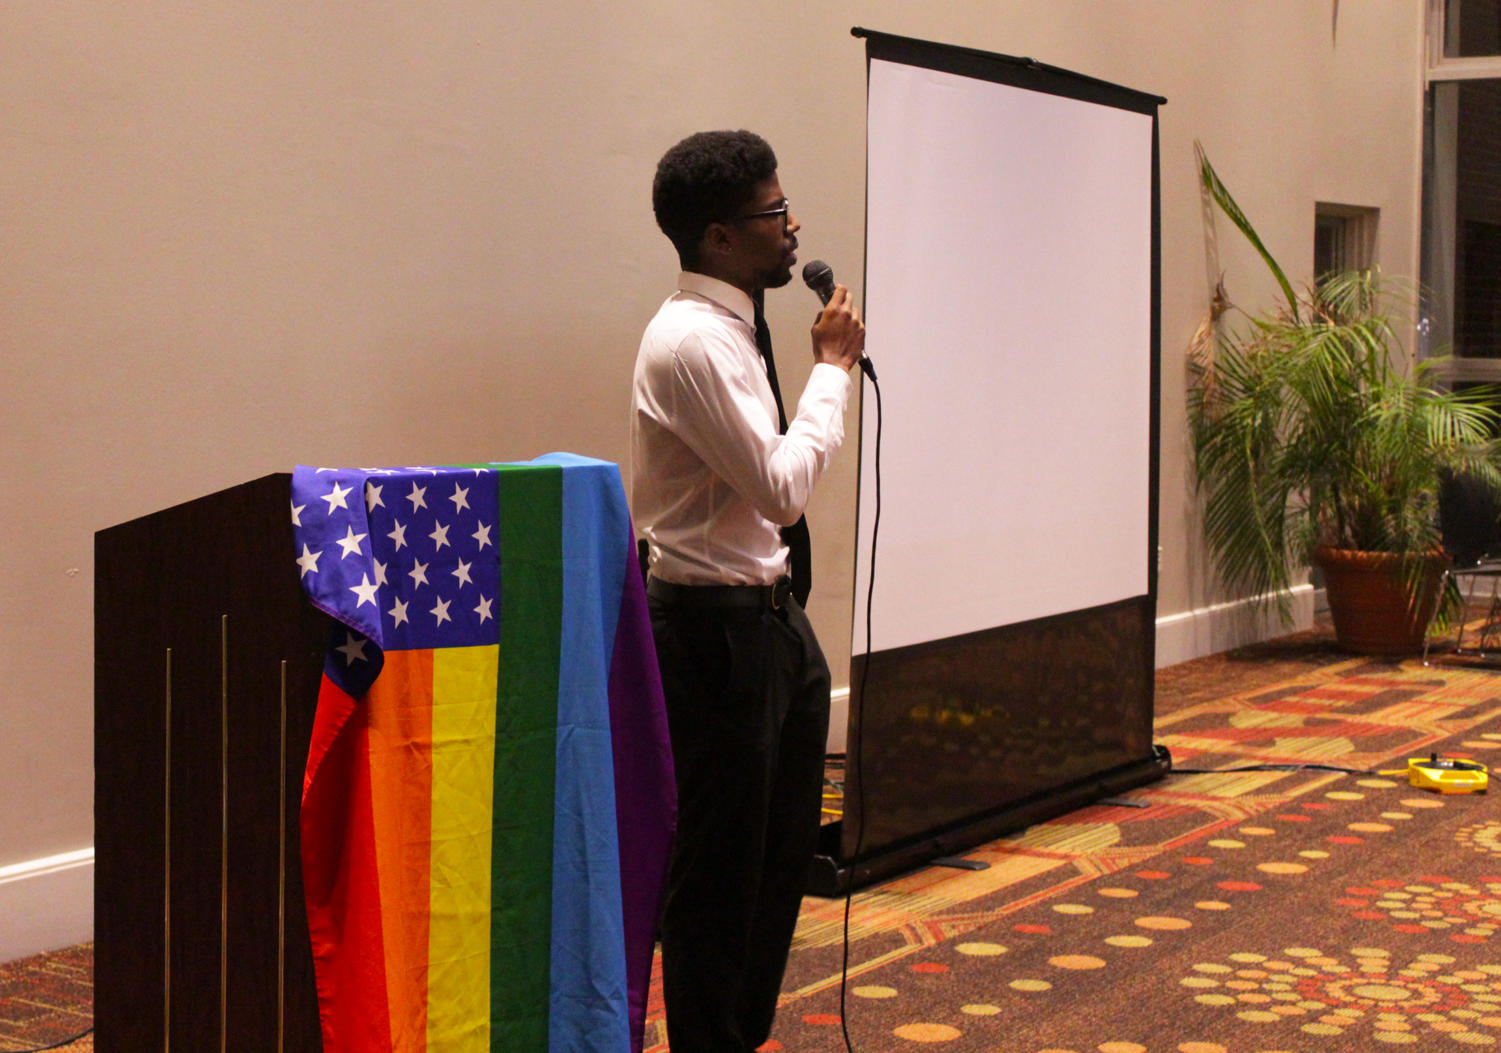 Barry D. McGuire performs a spoken word poem about the difficulties of being a black man in the LGBTQ community at Loyola's World AIDS Day Cocktail Party on Dec. 1.  The event was hosted by Delta Sigma Theta and Loyola's newly formed LGBTQ organization, Plus+. Photo credit: Hannah Renton